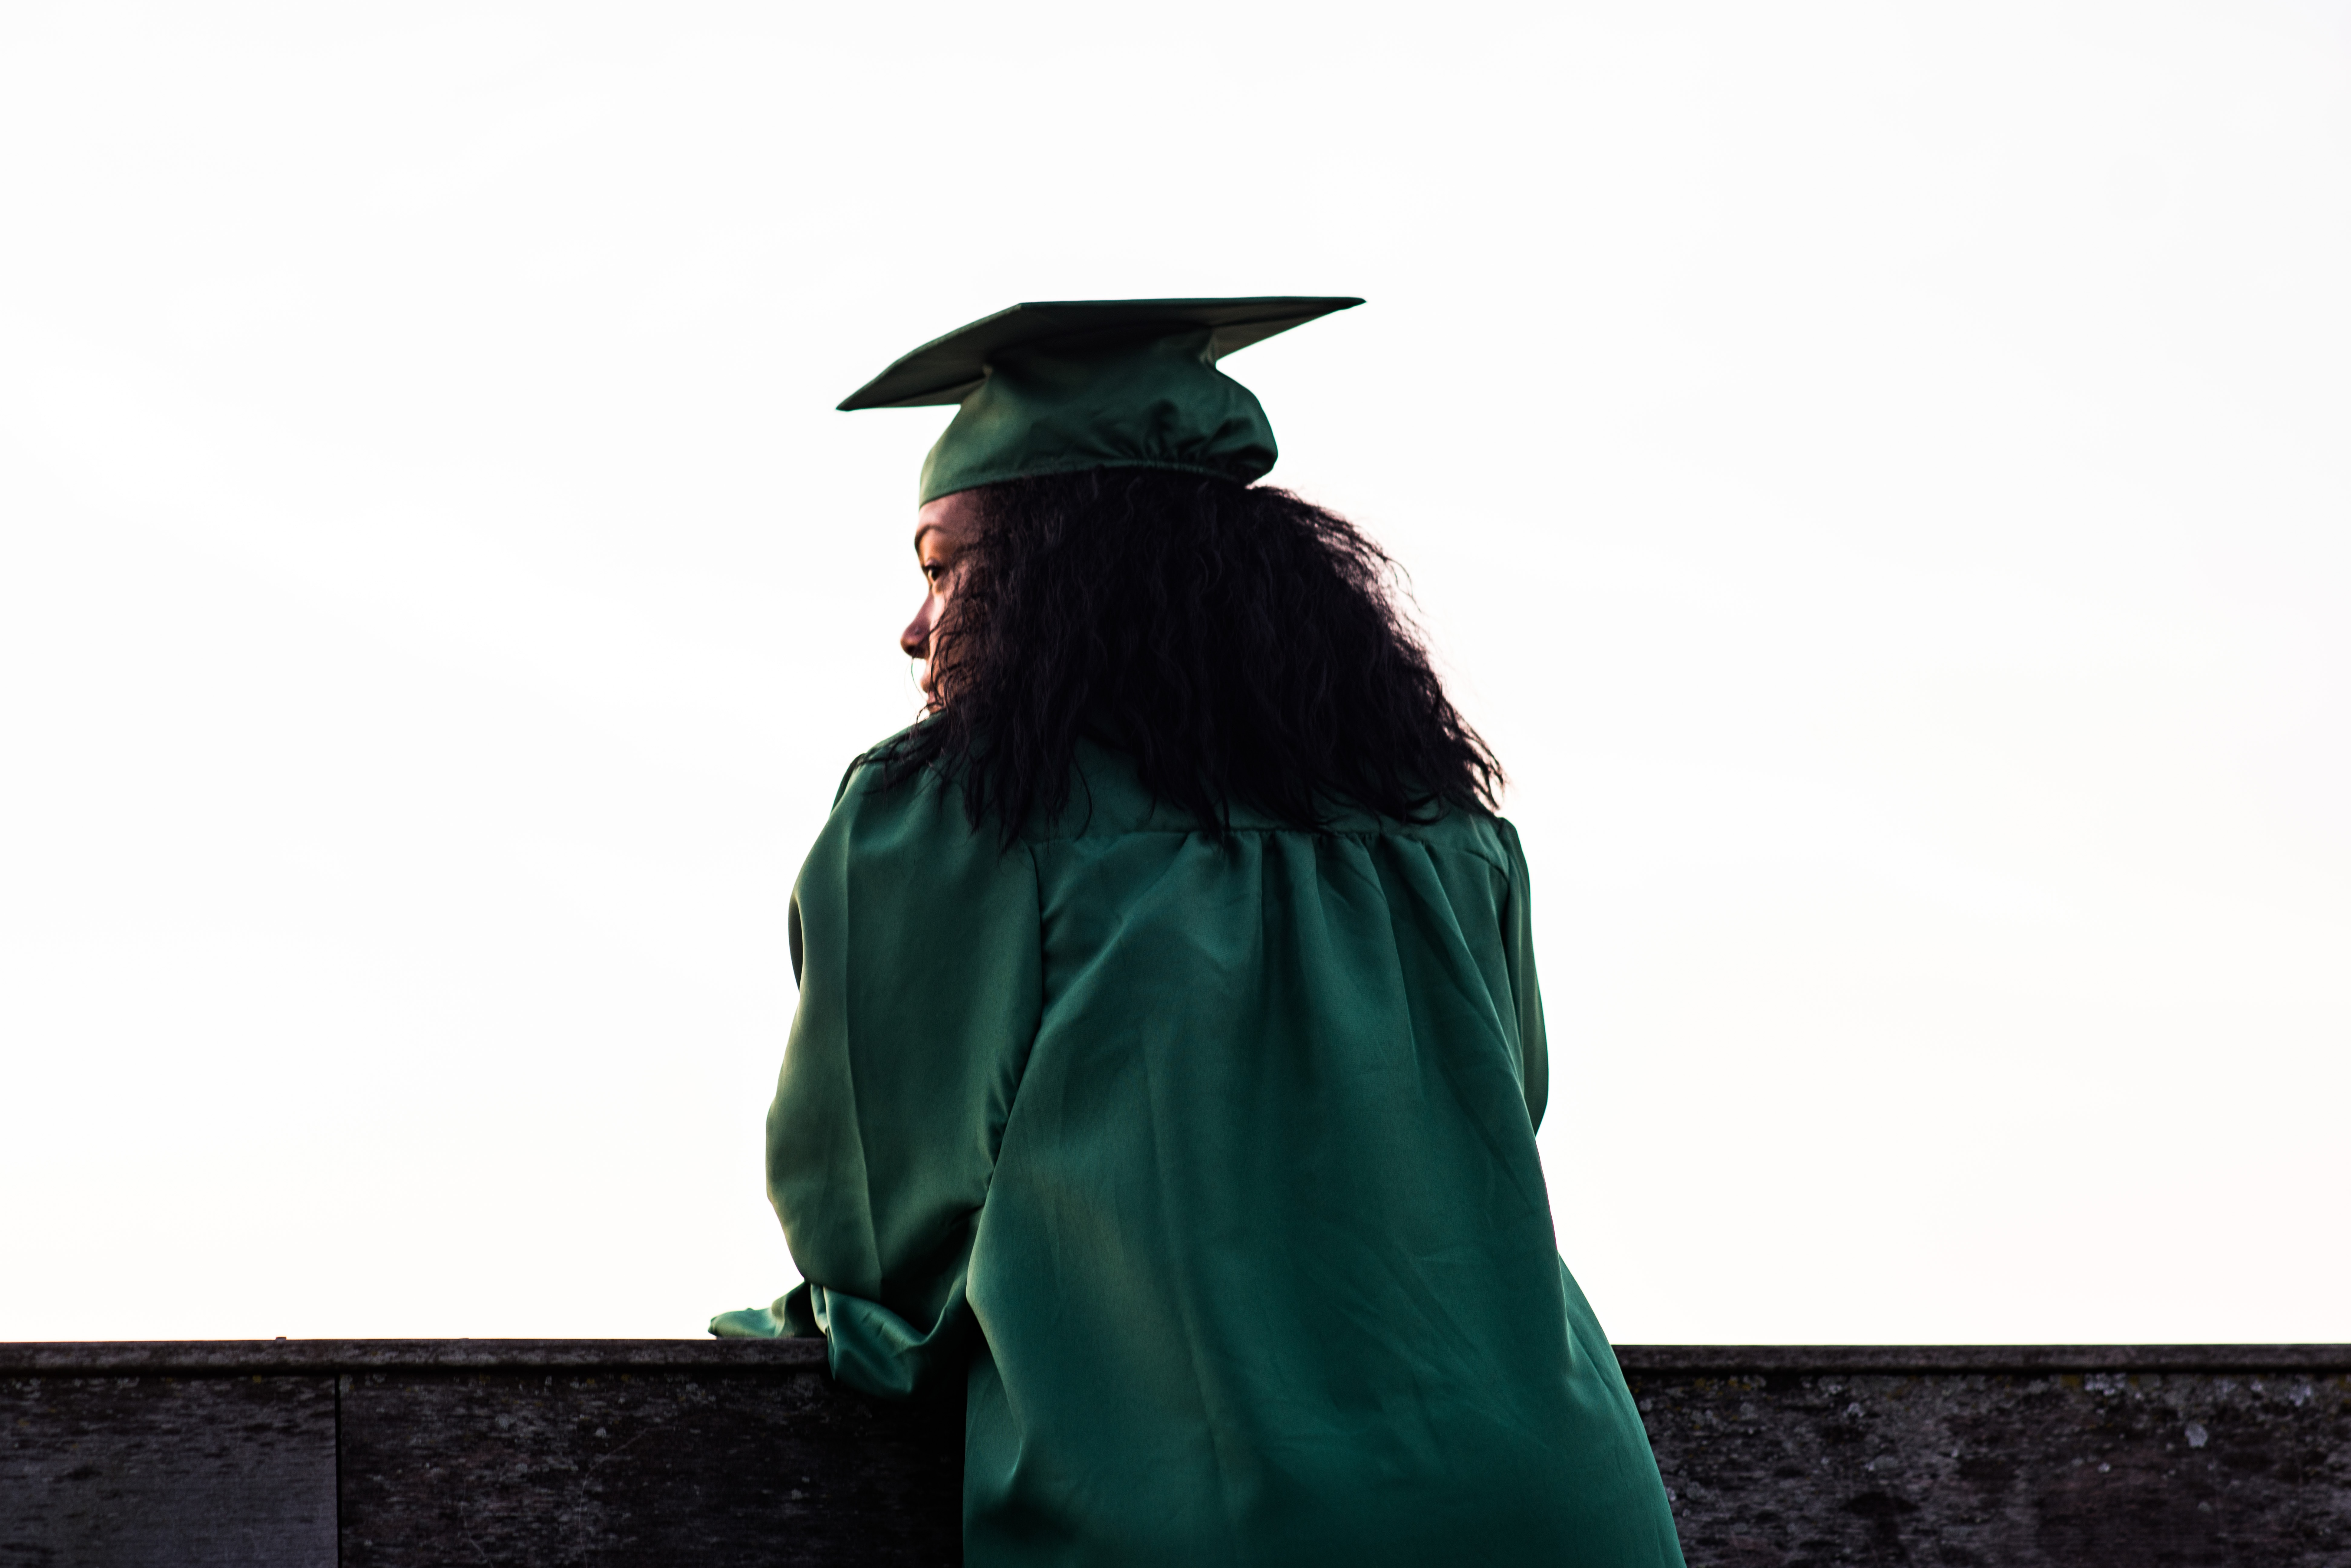 girl in cap and gown with back turned